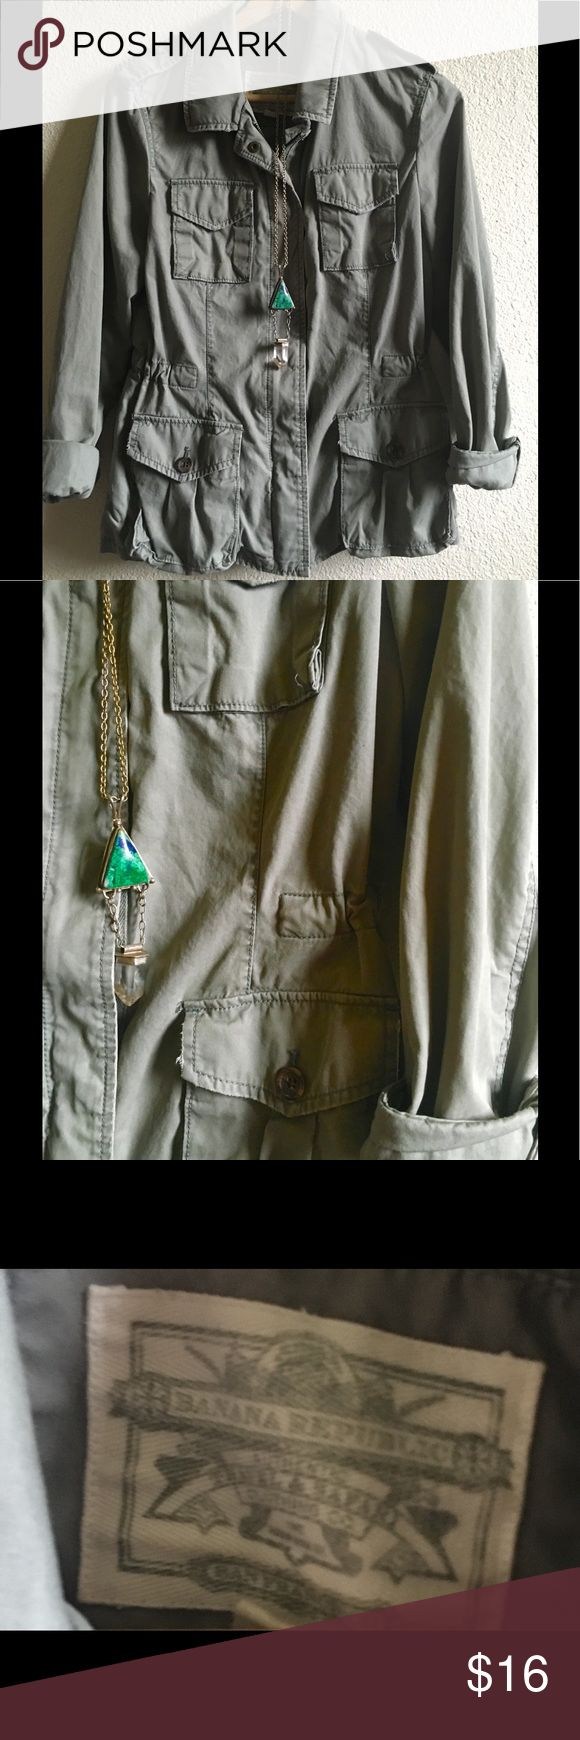 Green banana republic jacket M Great condition no buttons or zippers missing. Very cute and lightweight. Ready for summer. Banana Republic Jackets & Coats